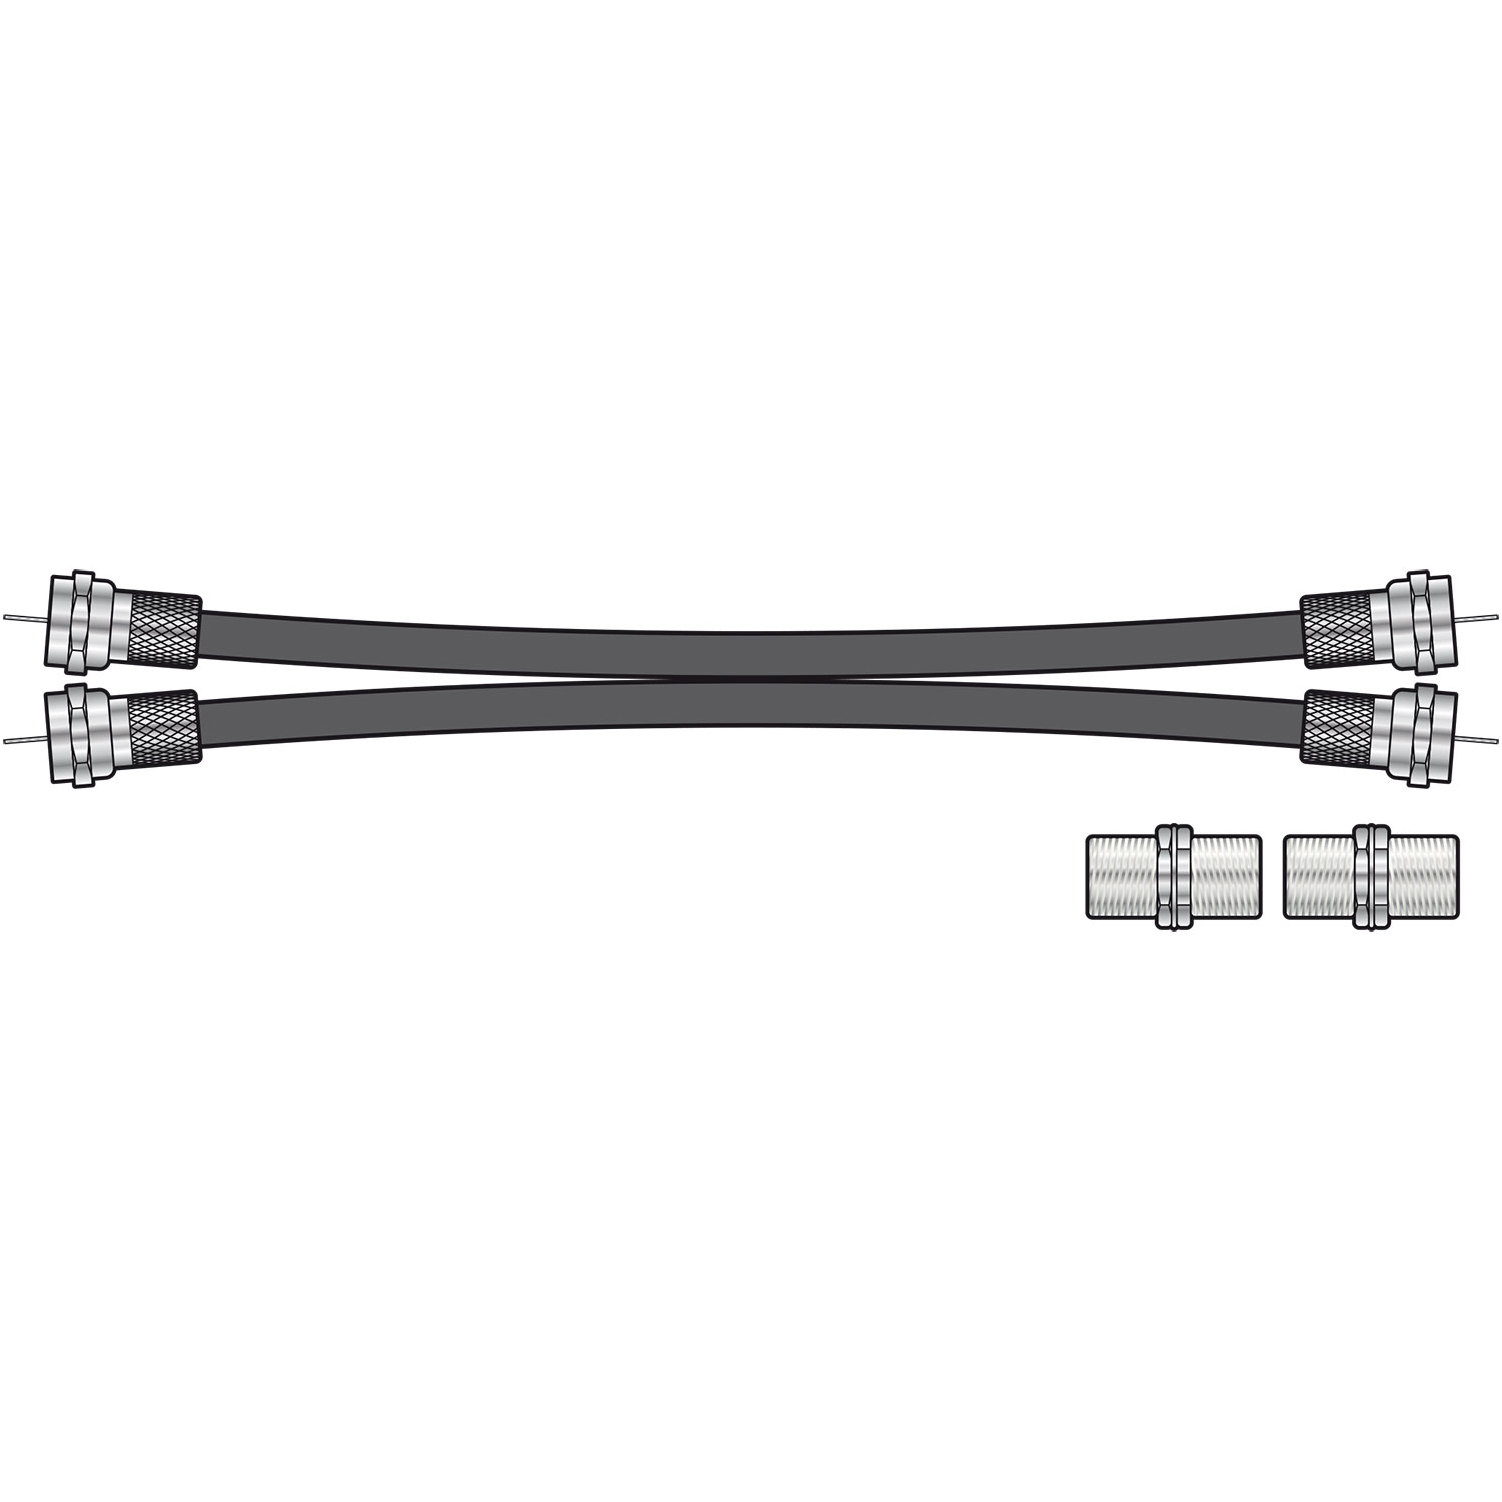 Image of F PLUG TWIN EXTENSION LEAD - 10 metres